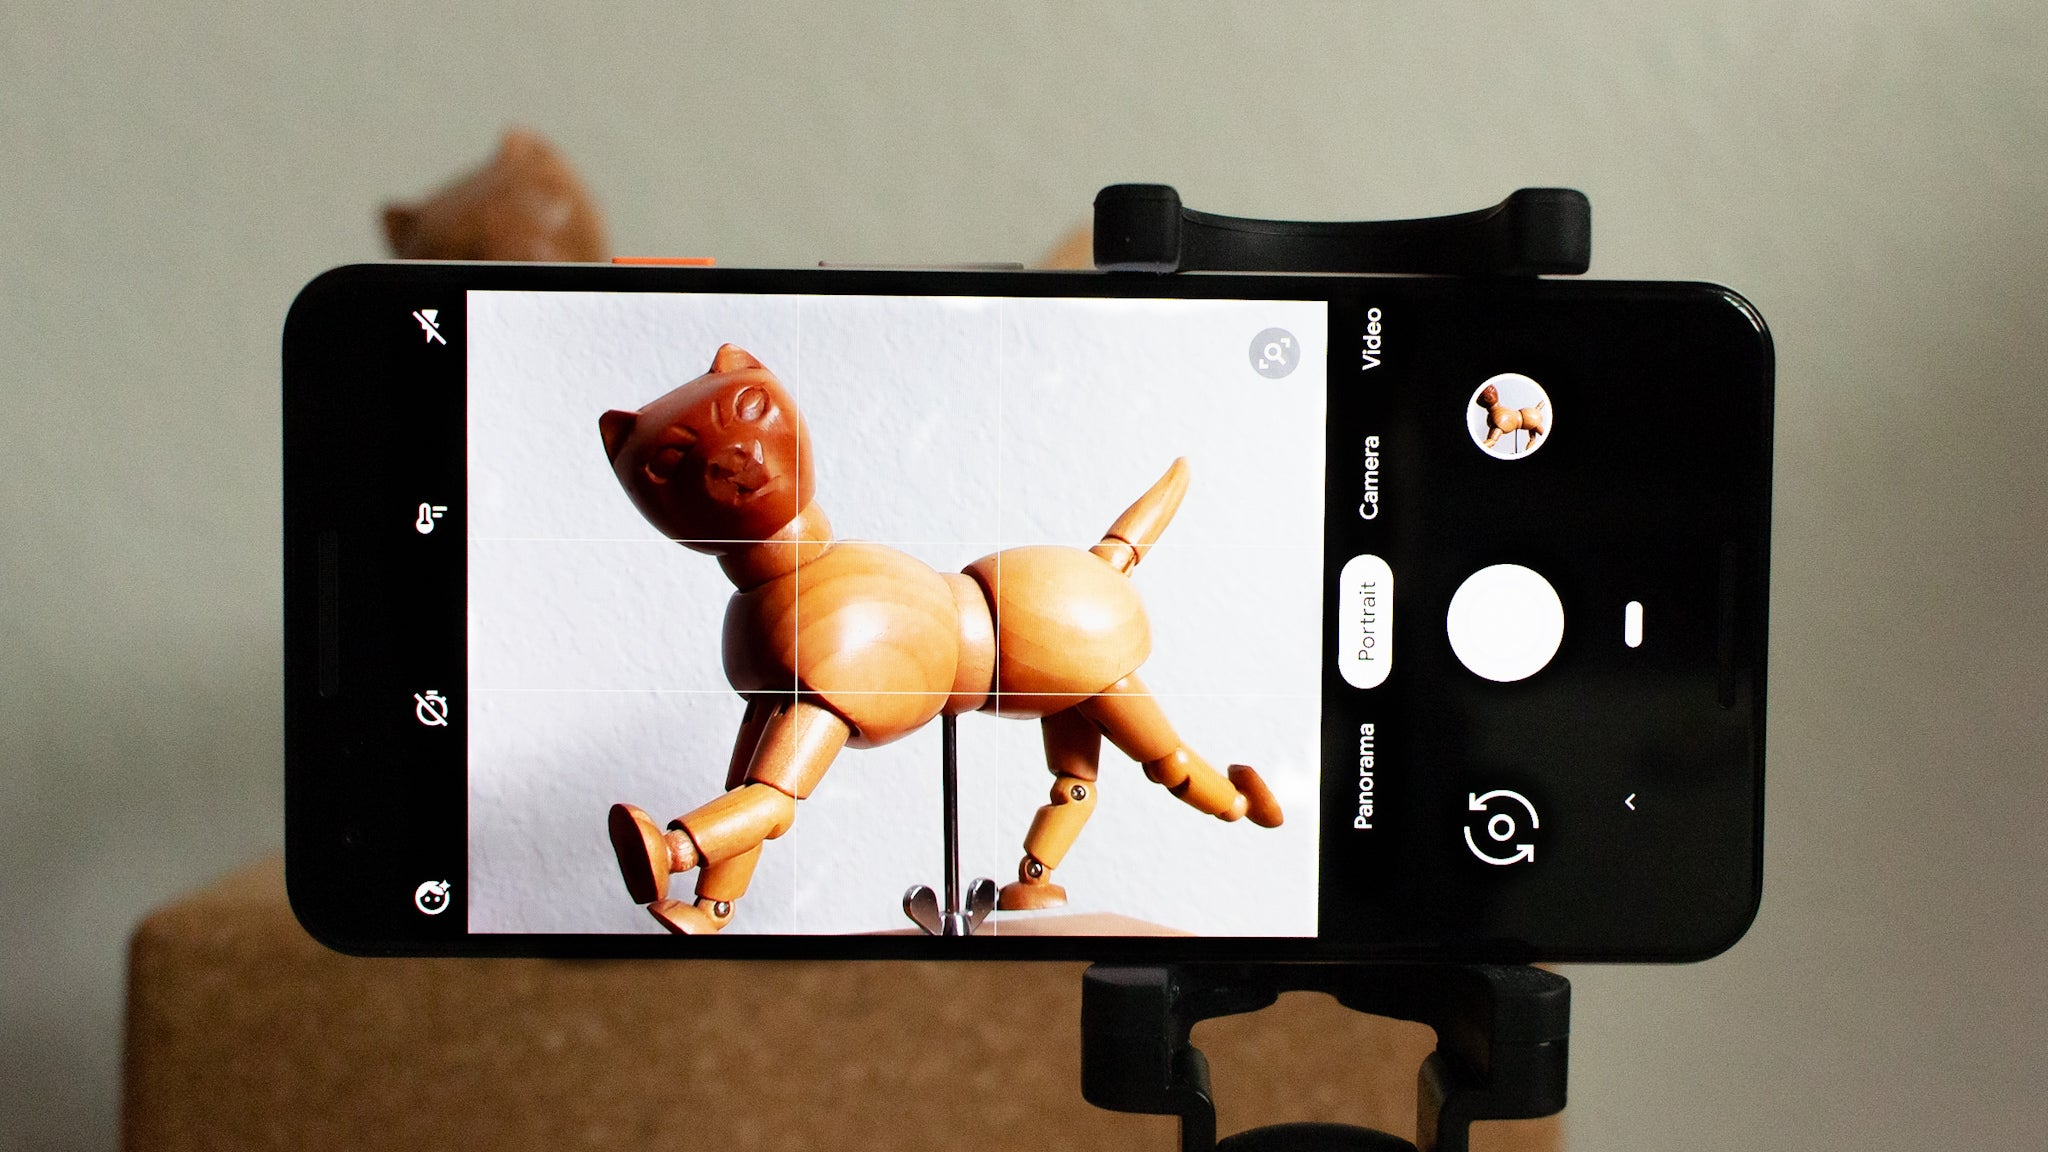 How To Take Amazing Photos With Your Android Phone